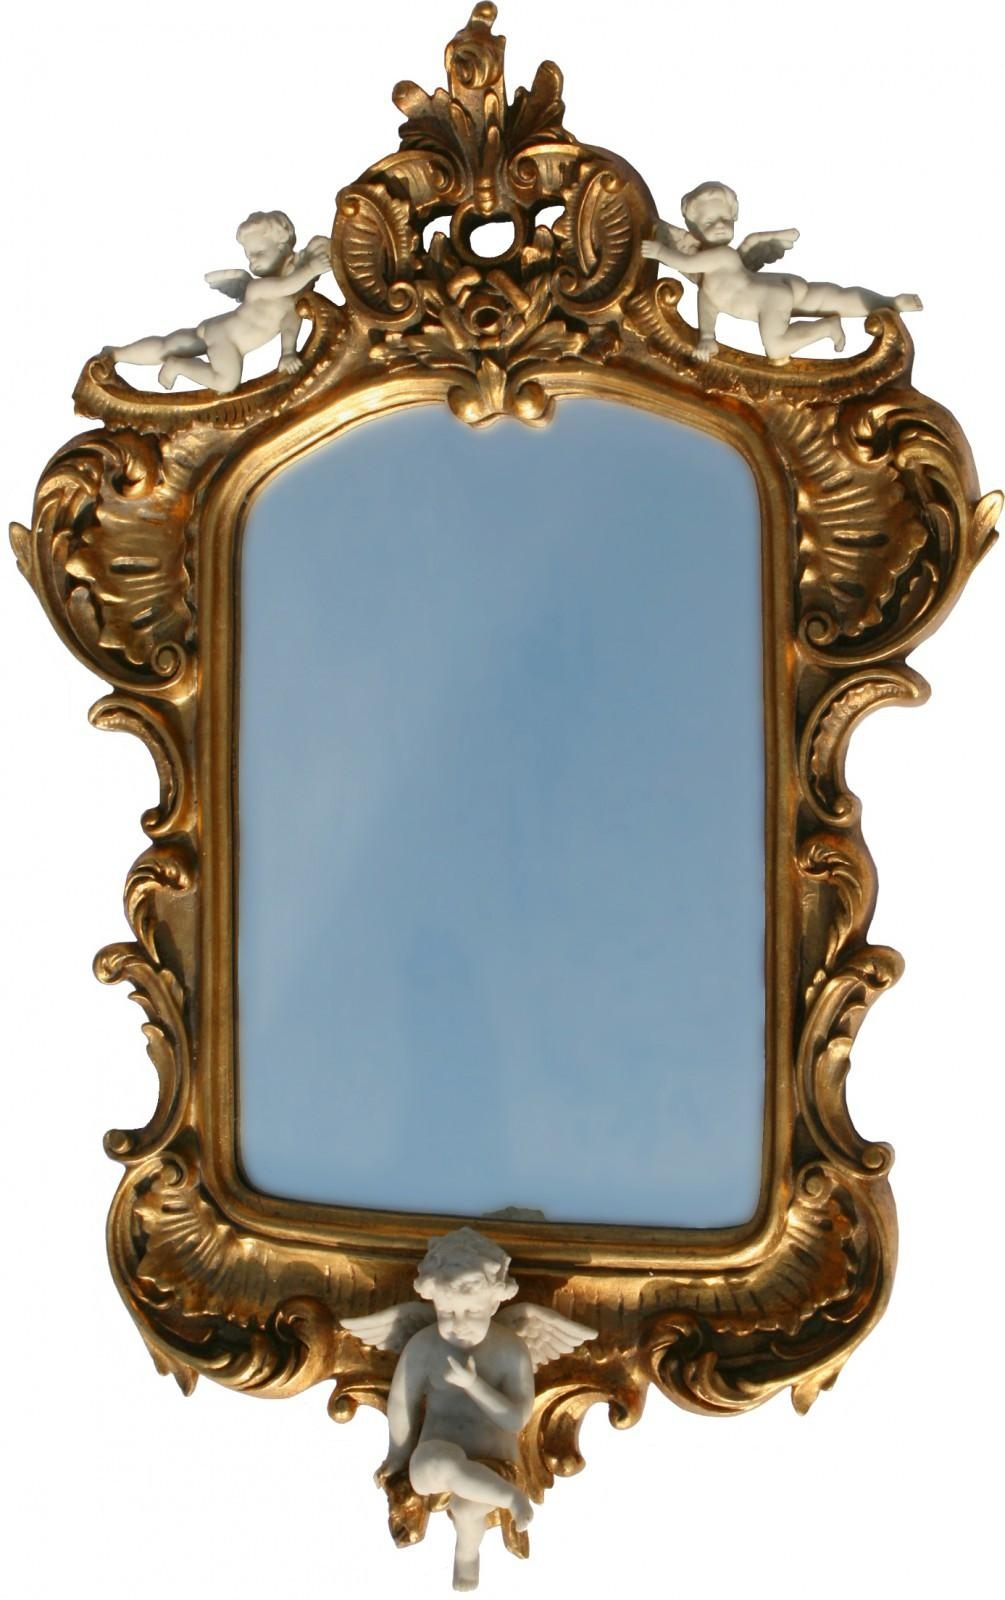 Angel Motif Baroque Mirror In Gold Wooden Frame With Three White In Baroque Mirror Gold (View 7 of 20)